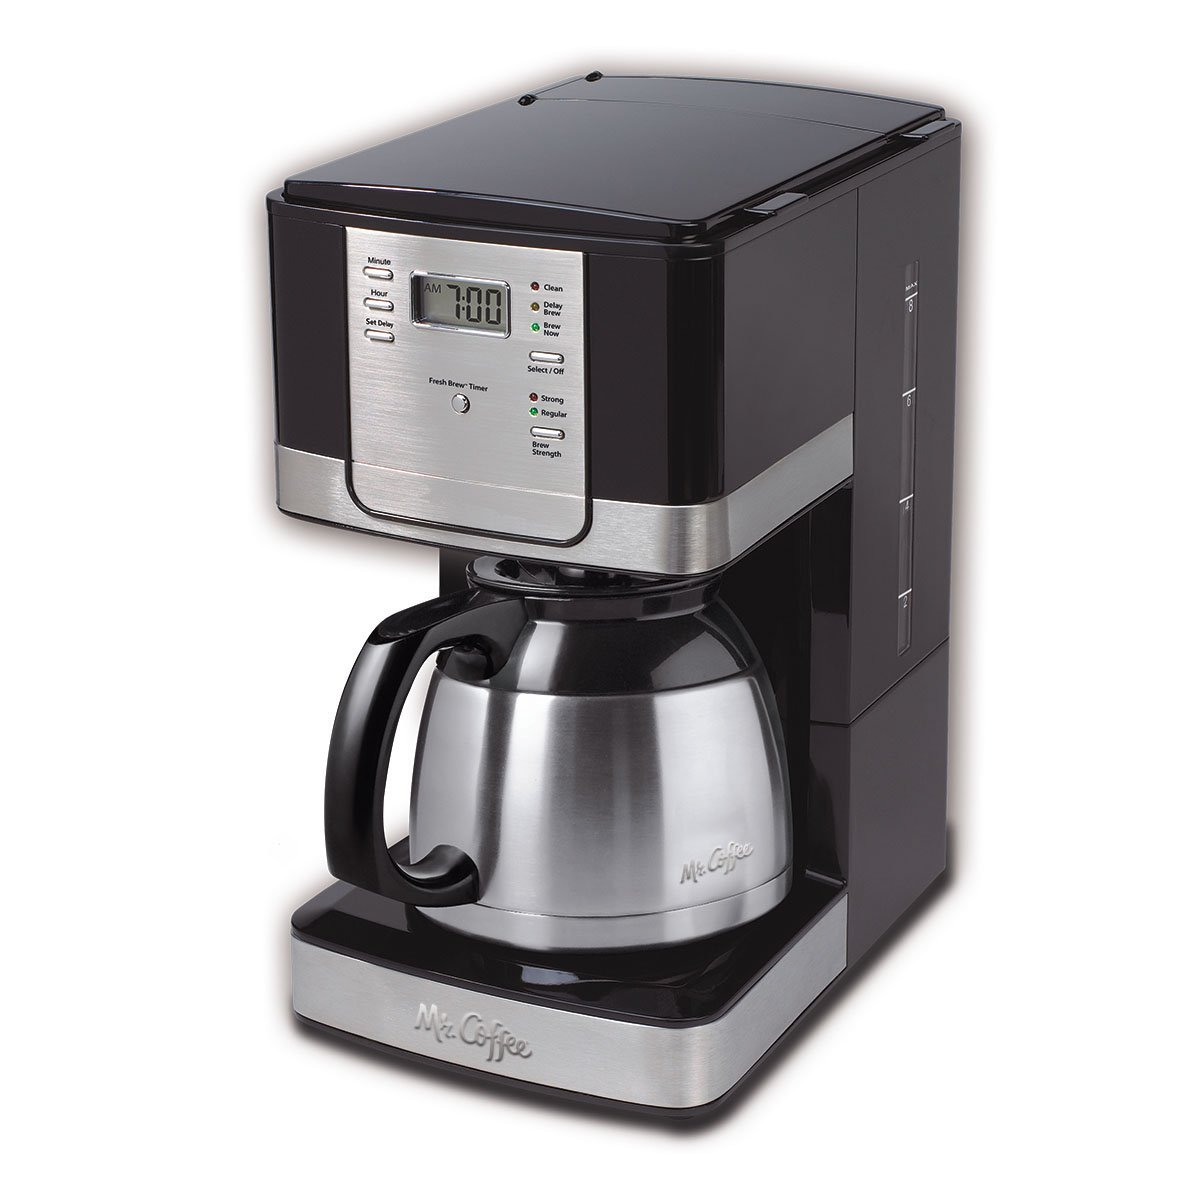 Mr. Coffee Advanced Brew 8-Cup Programmable Coffee Maker with Thermal Carafe, Black/Chrome by Mr. Coffee